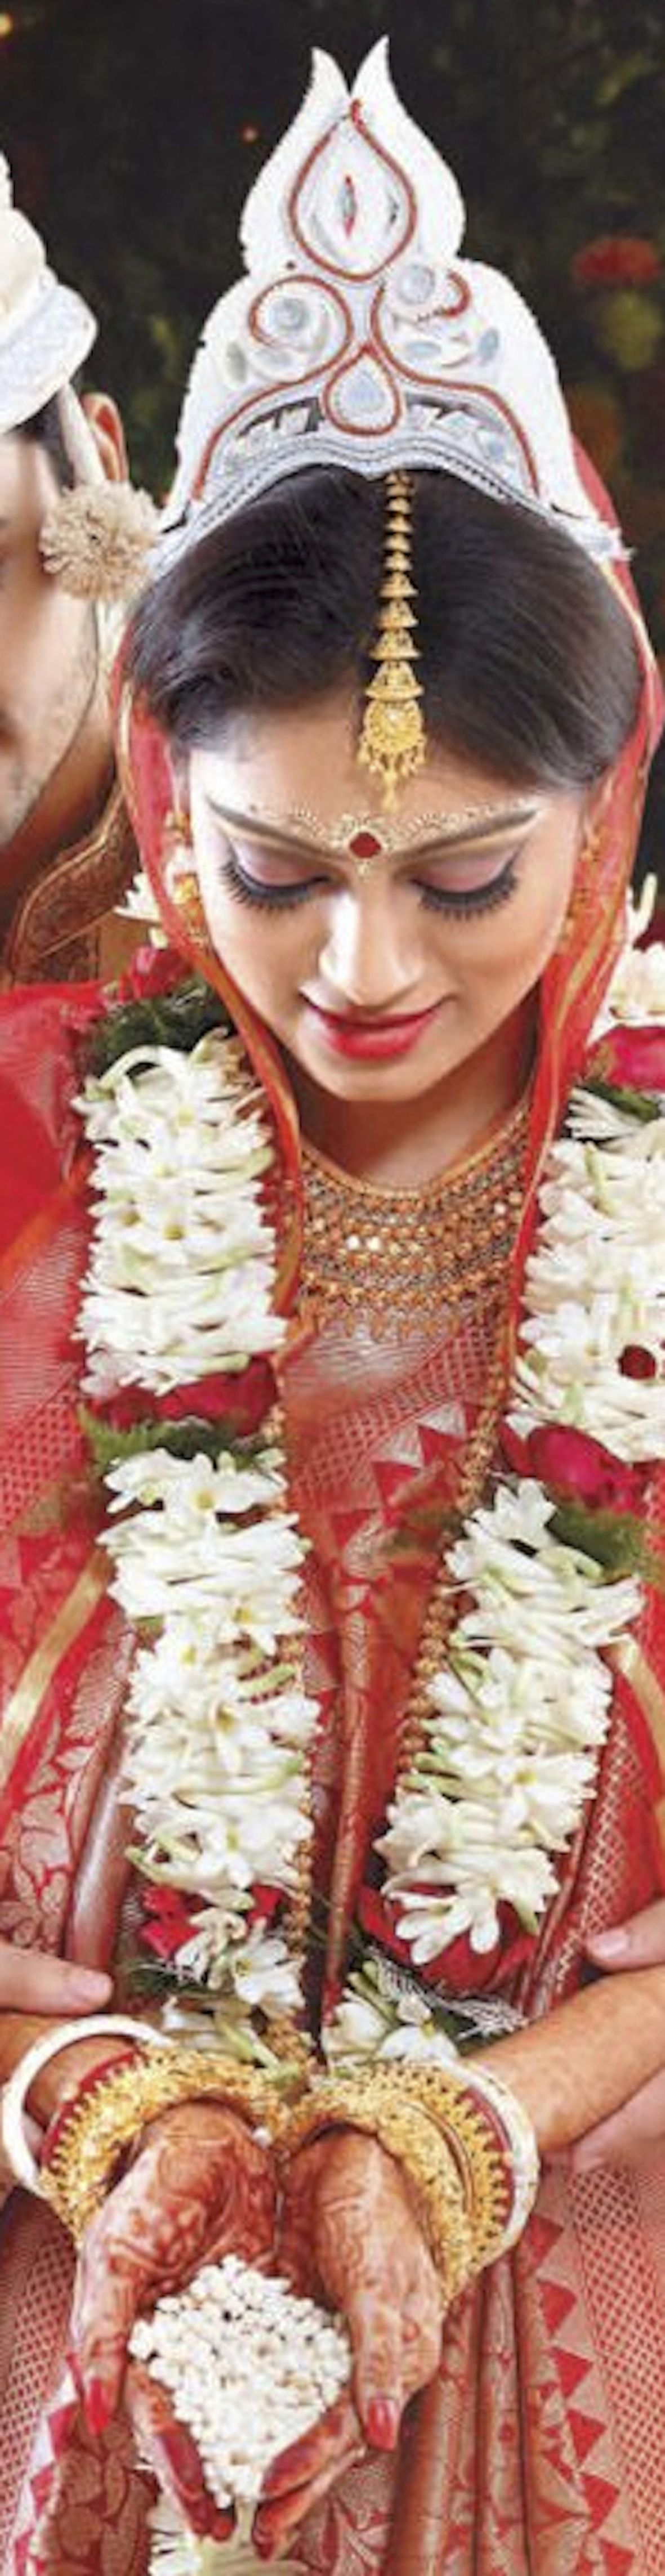 Bengali bride with traditional sholapith plant stem/bark